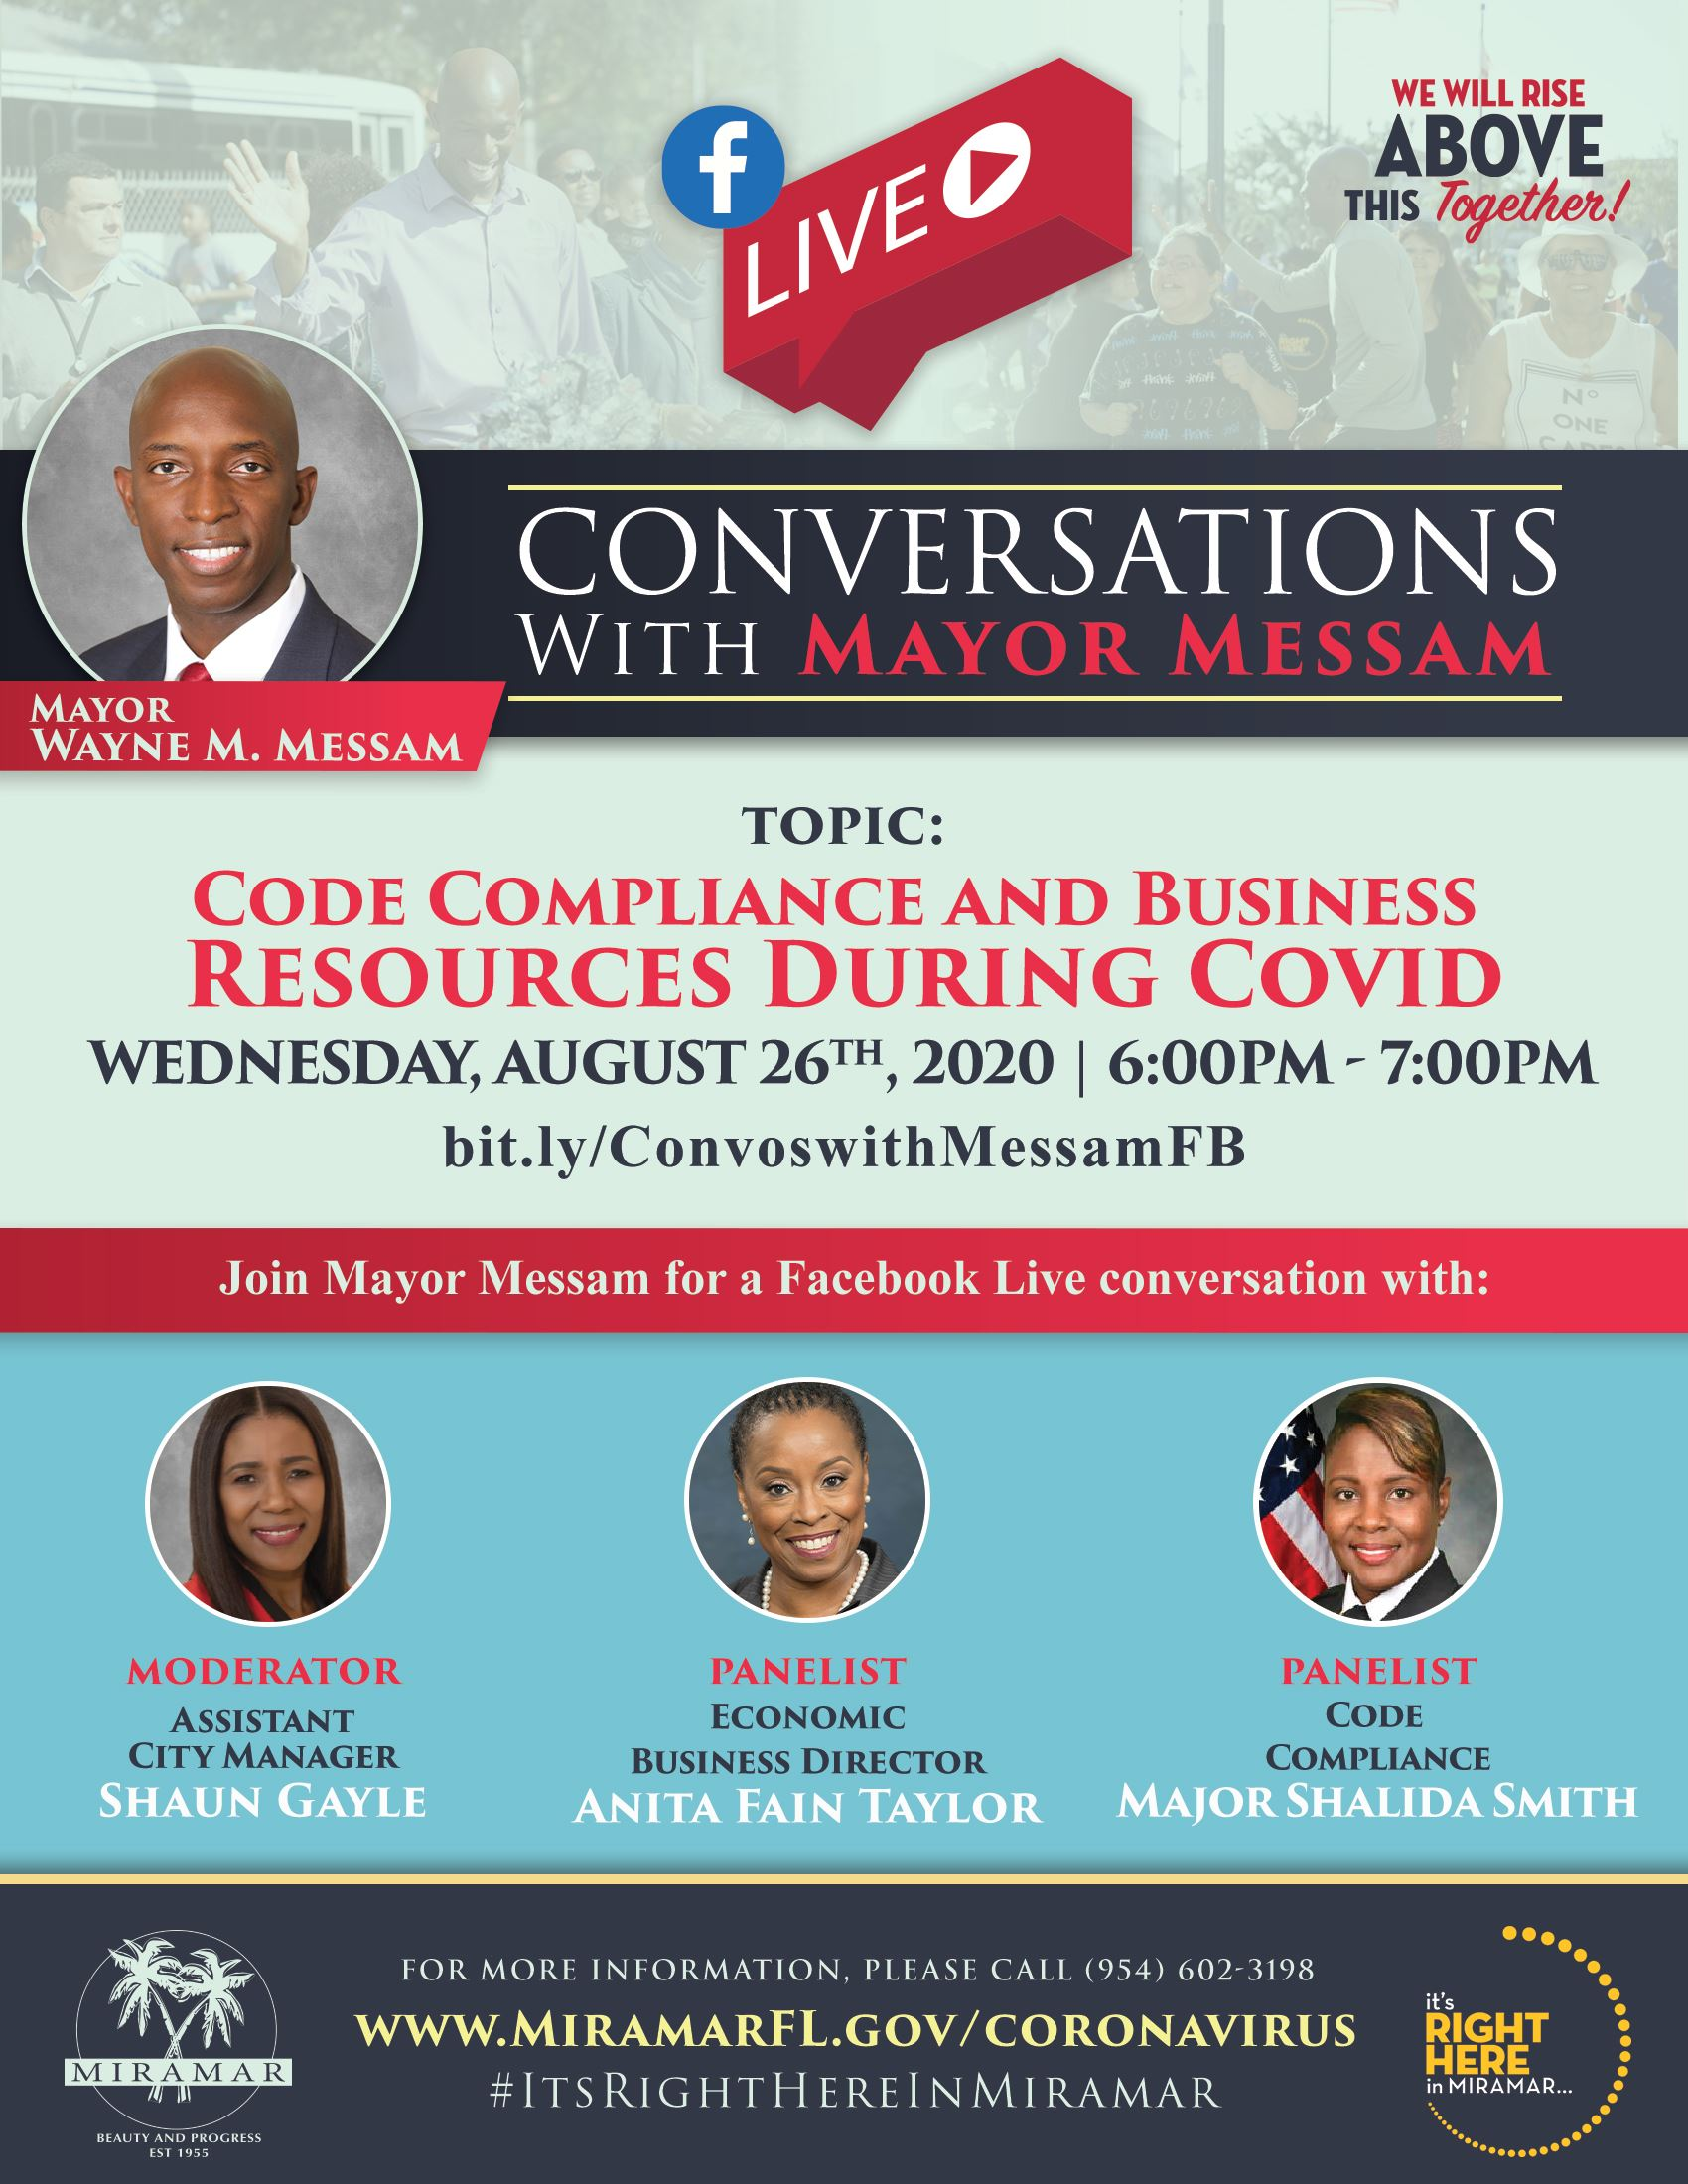 Conversations with Mayor Messam 0826 - Flyer